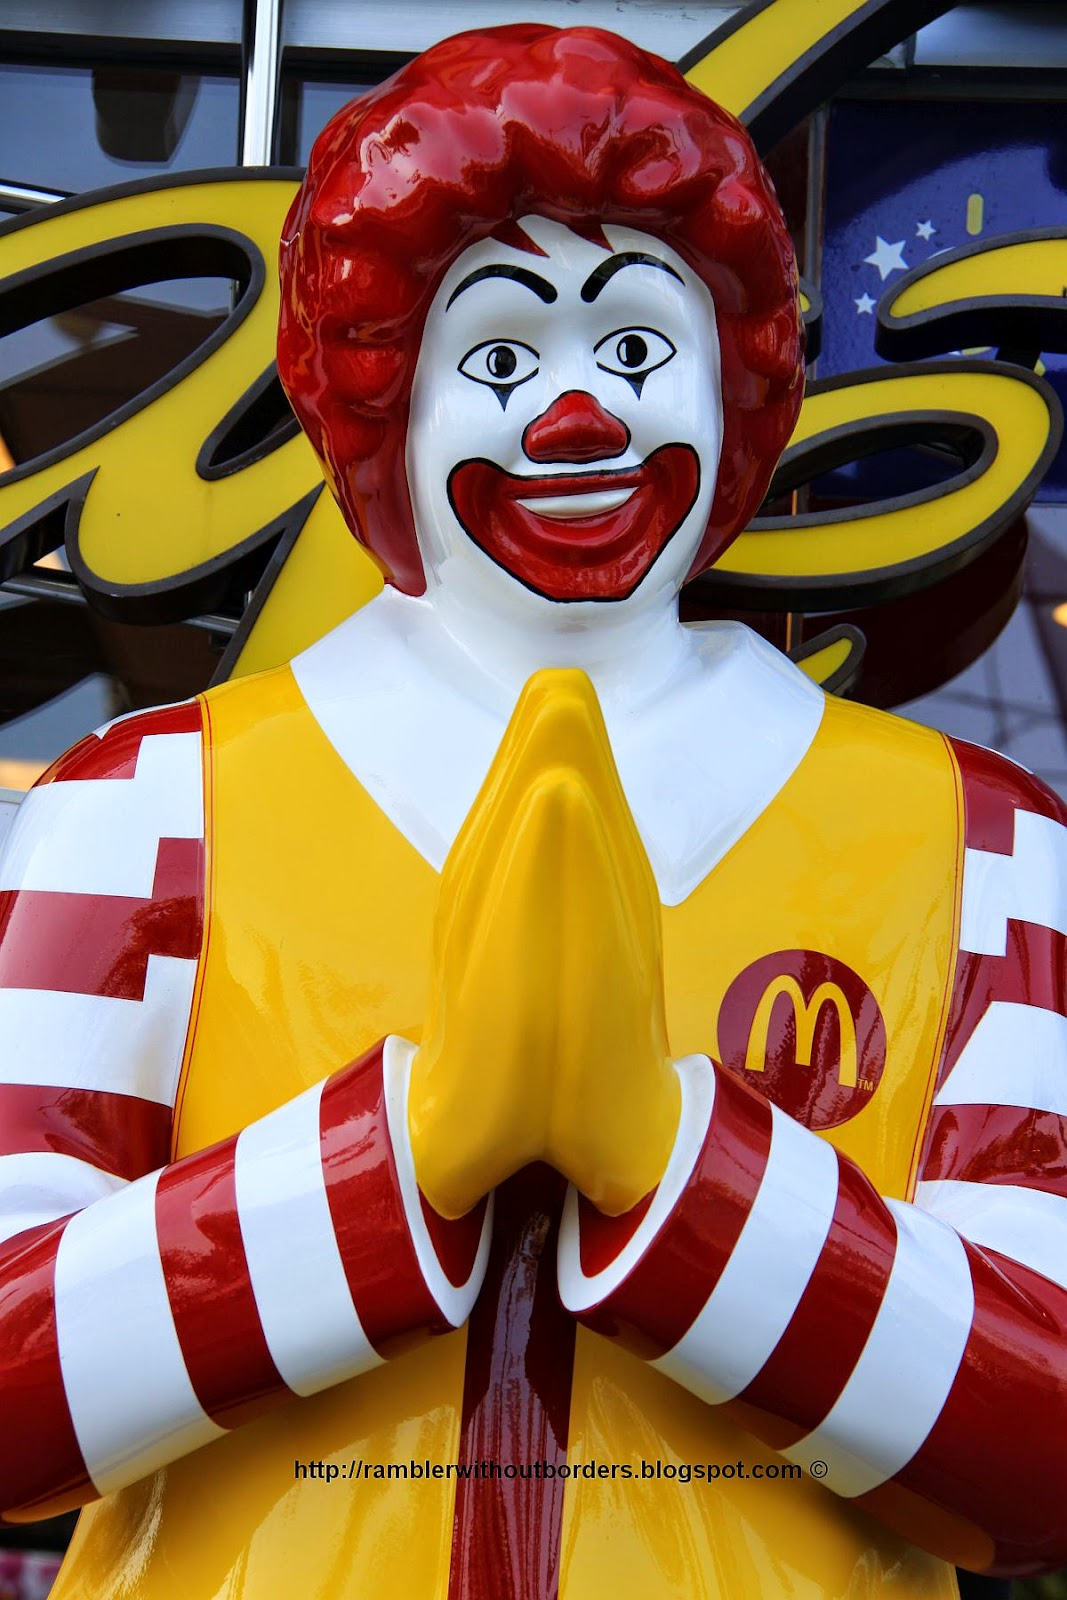 Ronald Mcdonald greets customers with a Thai wai, Thailand